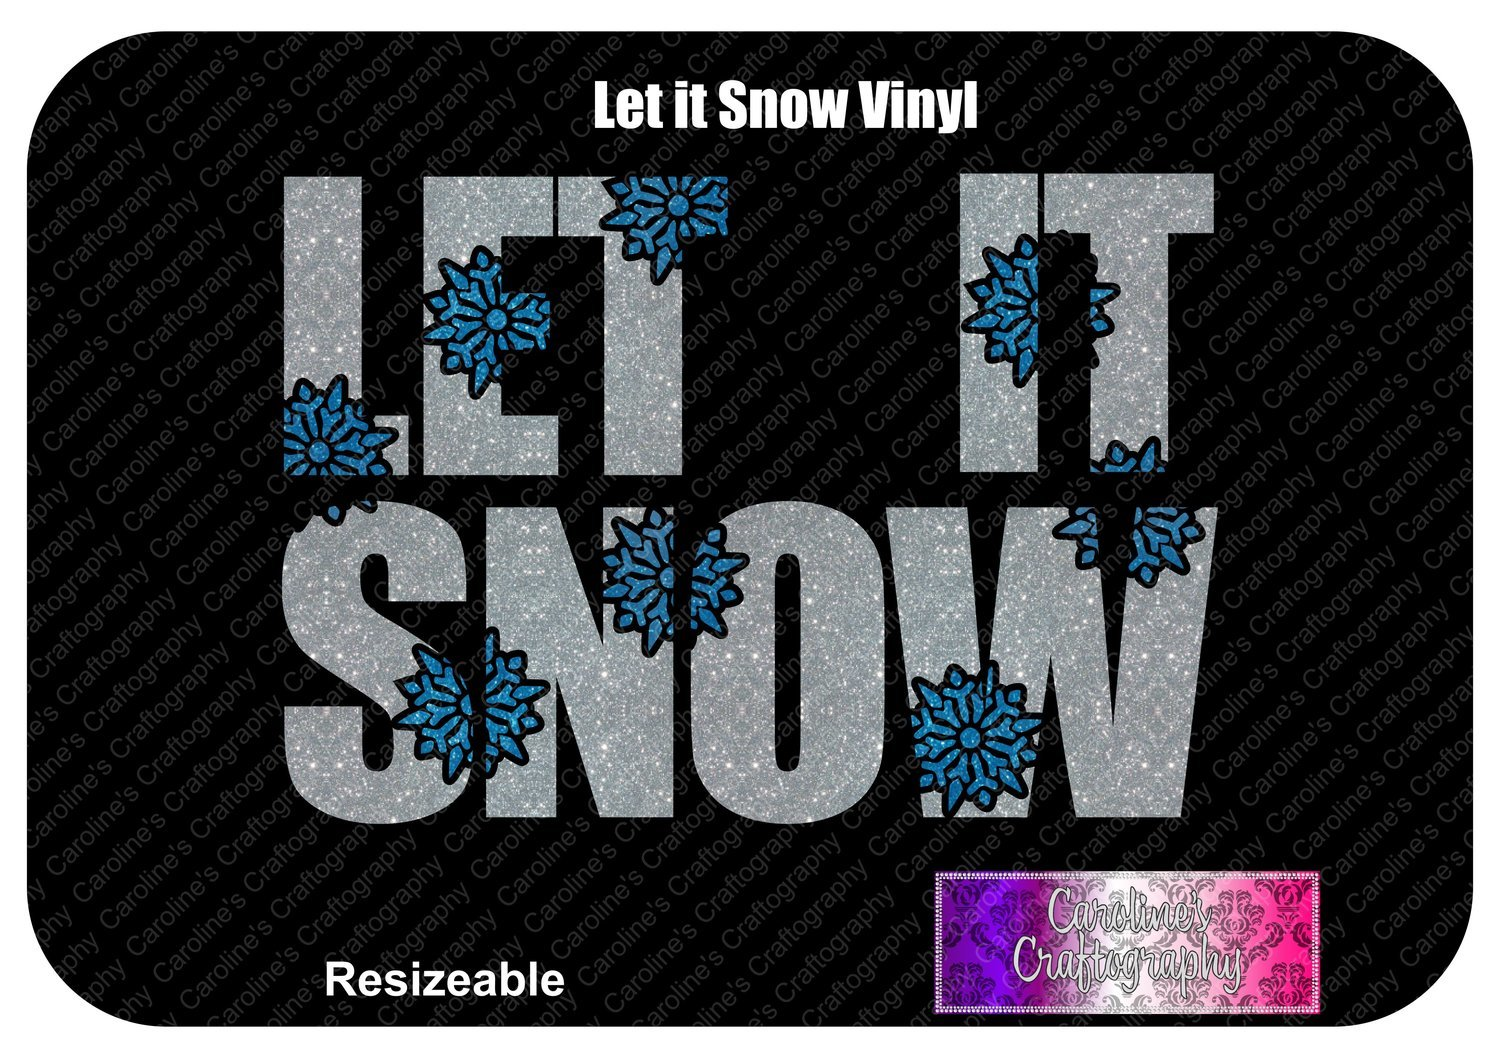 Let it Snow Vinyl